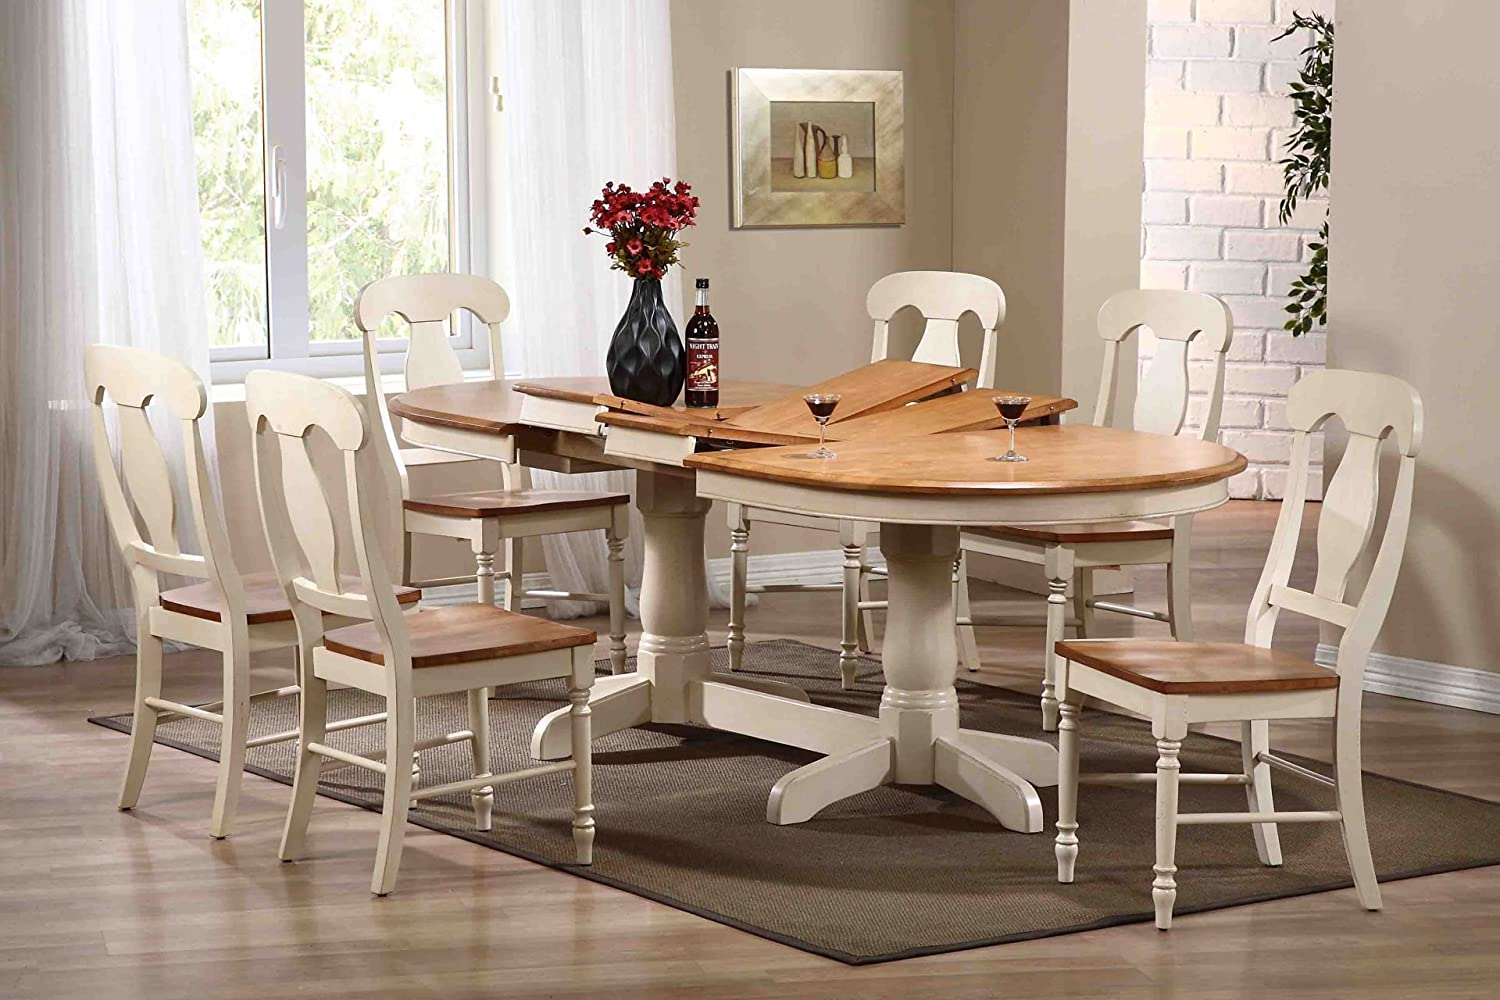 oval kitchen table set. Amazon.com - Iconic Furniture Oval Dining Table, 42\ Kitchen Table Set V